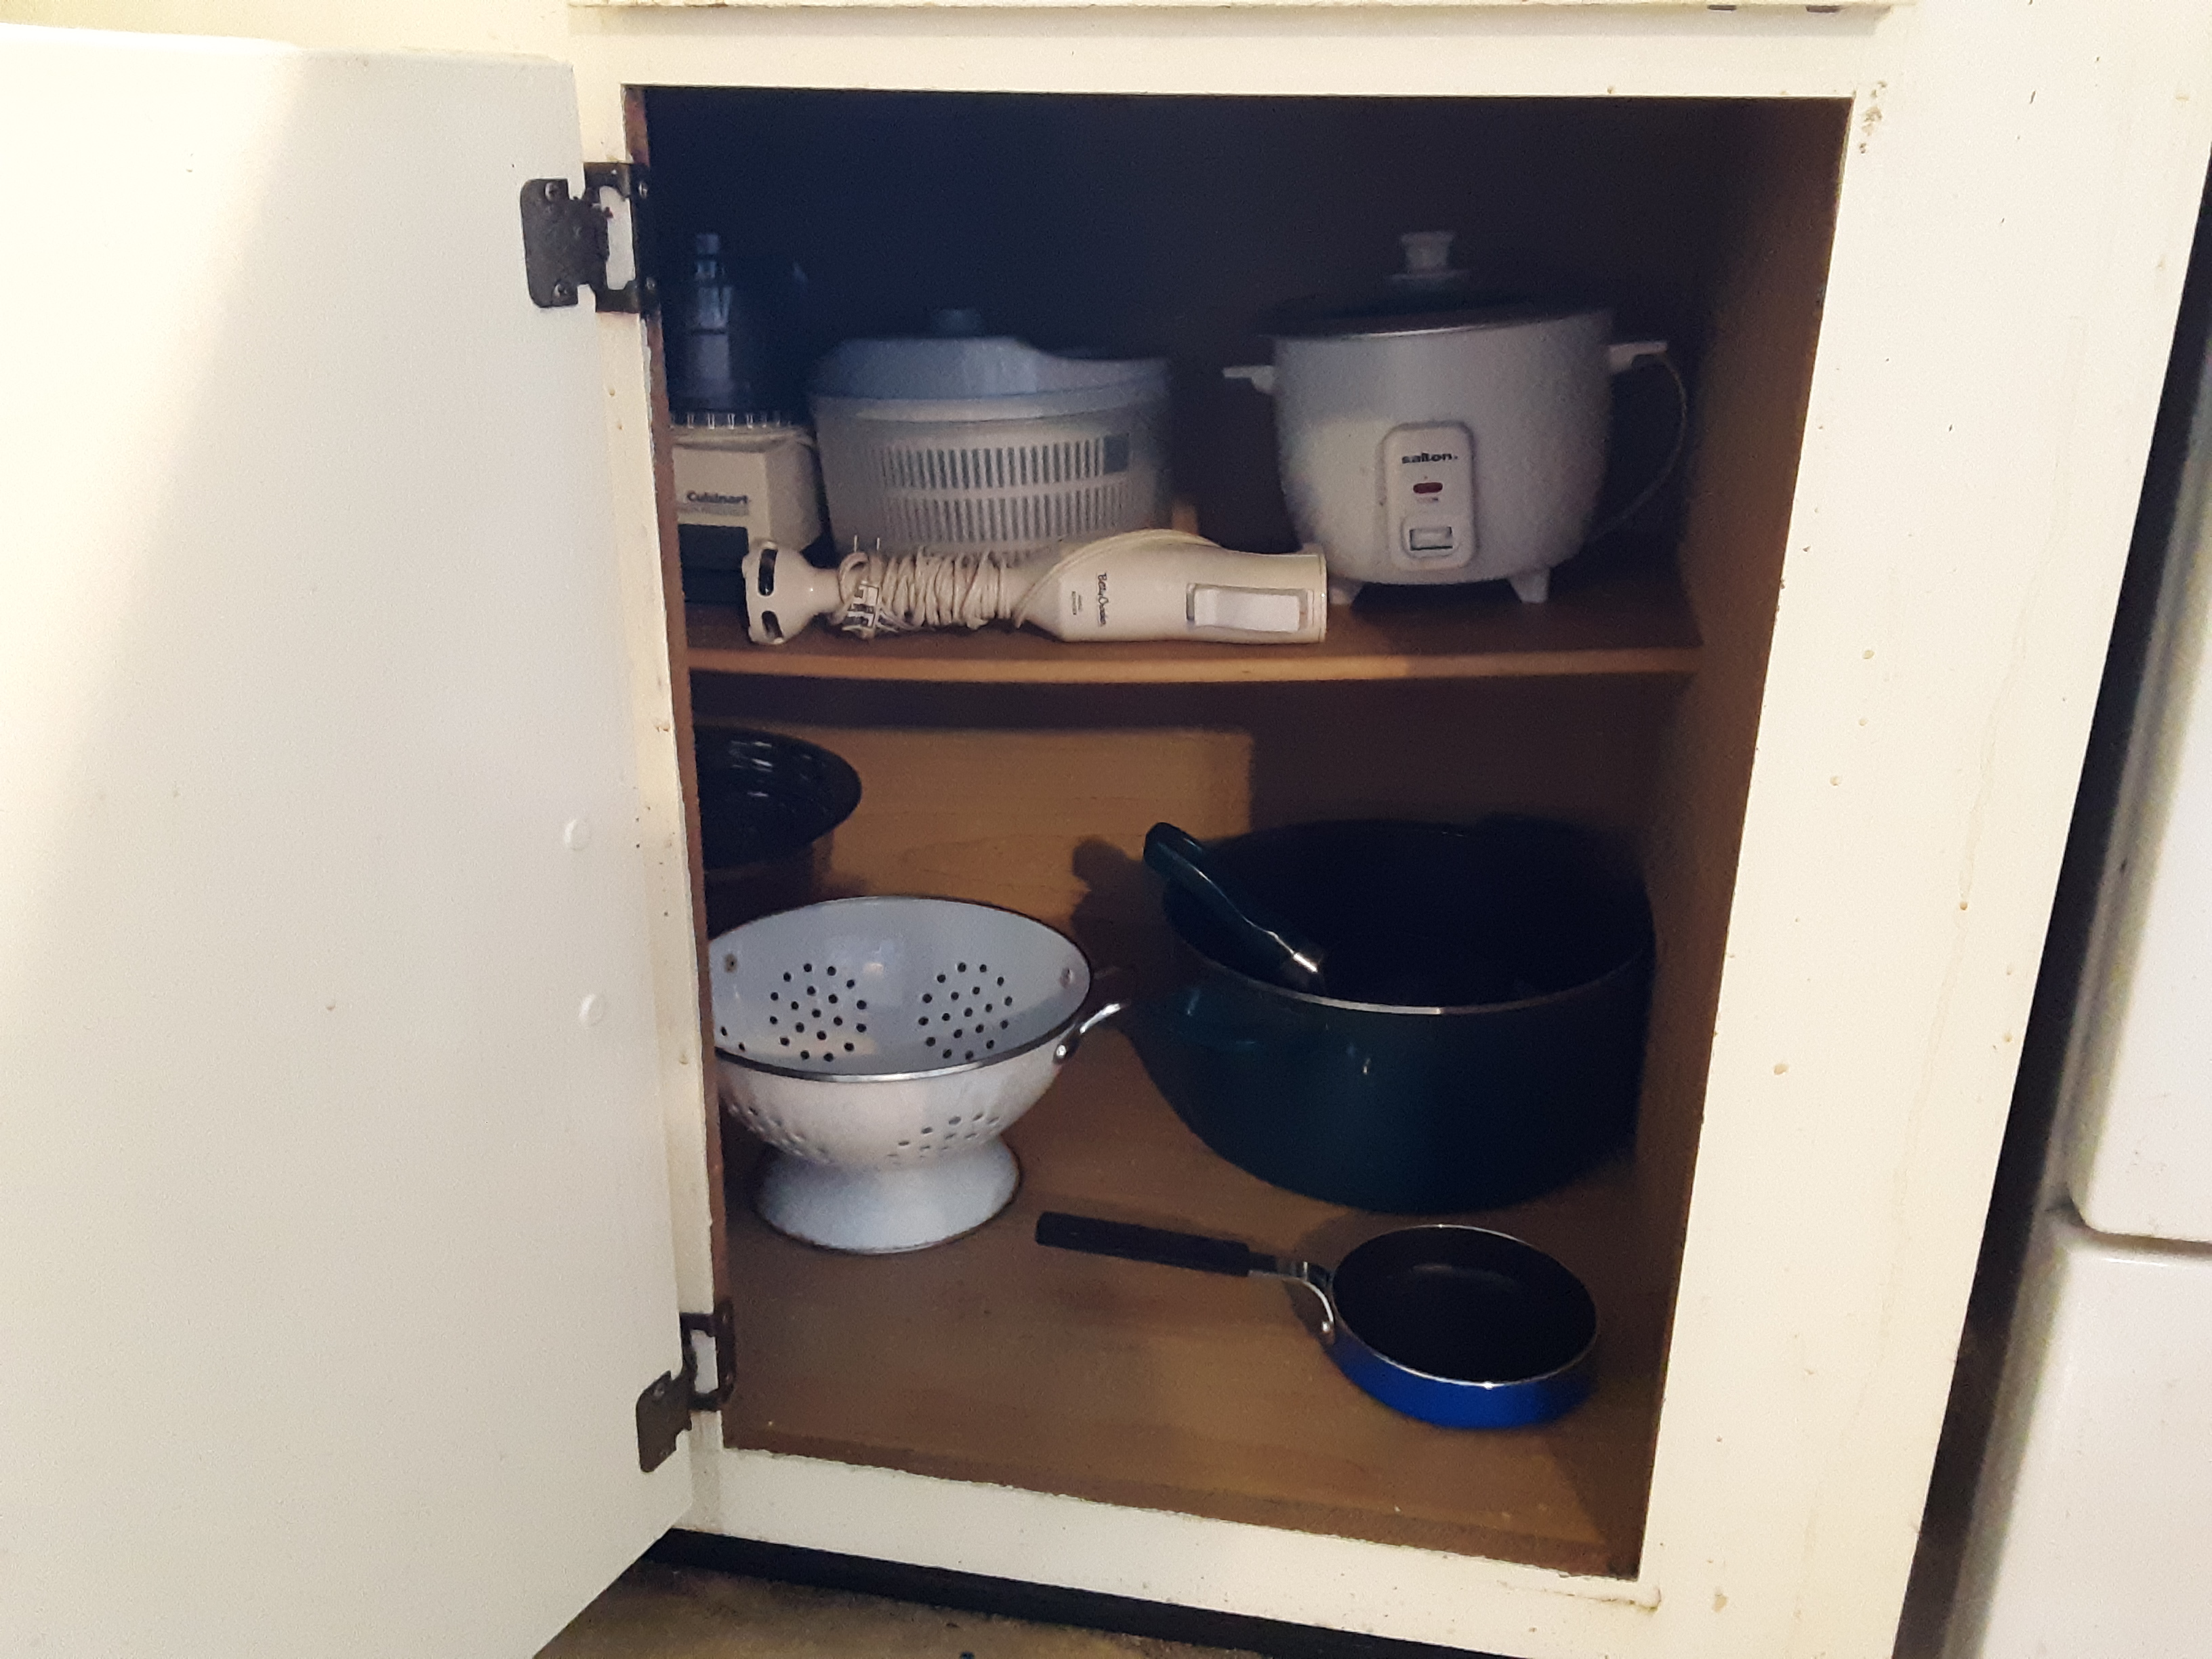 That same cupboard, free of clutter!